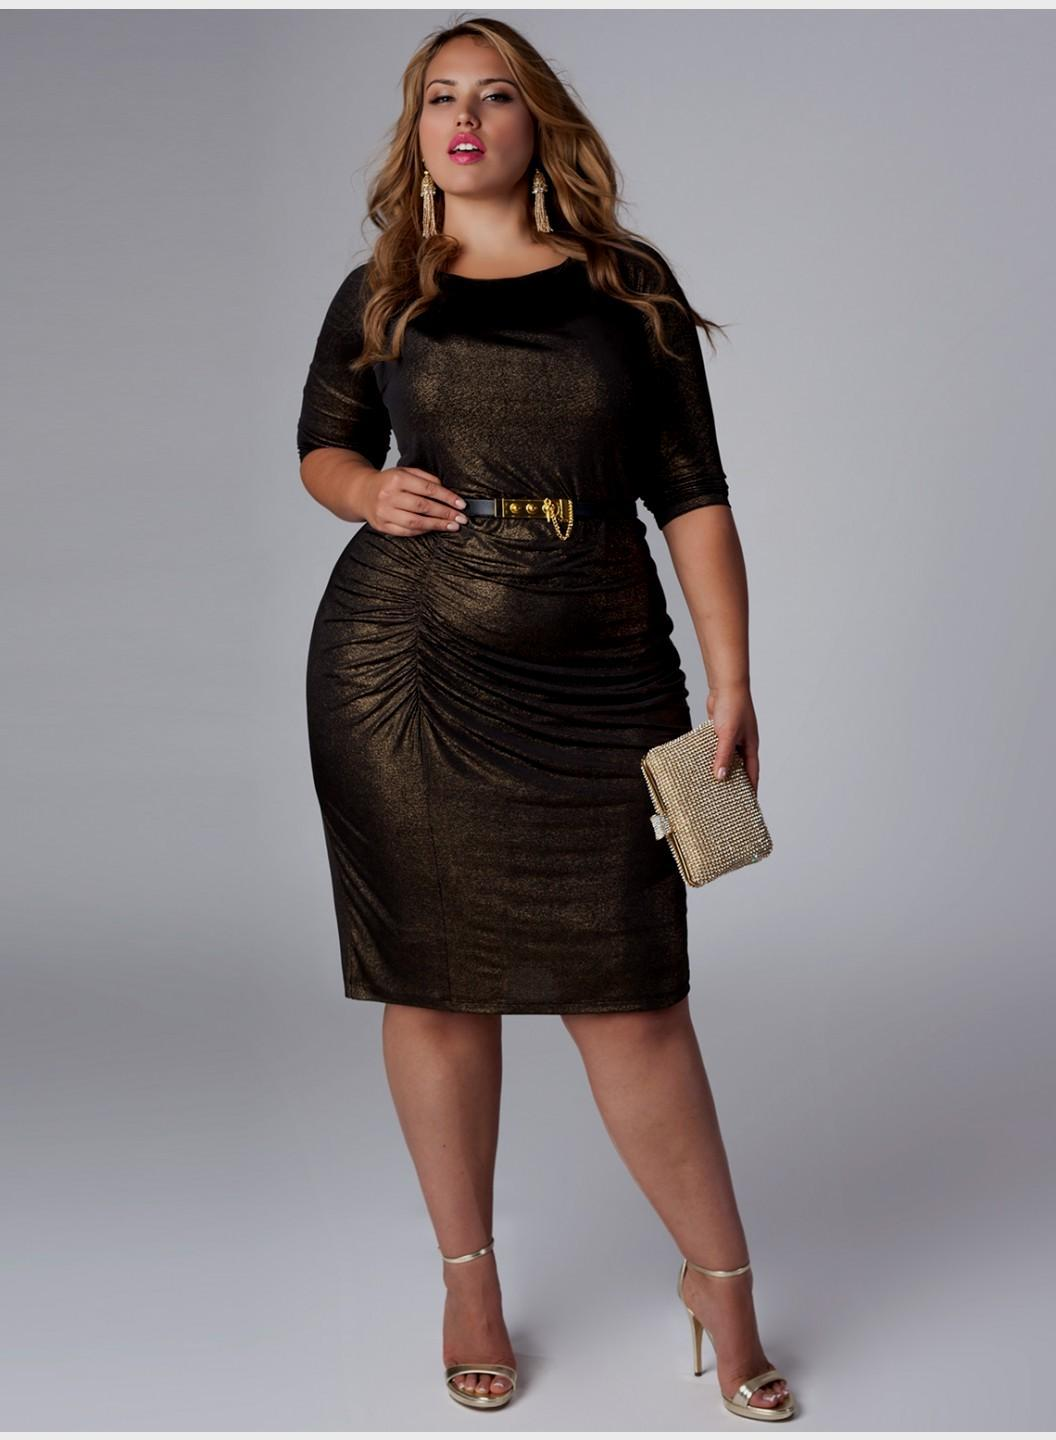 Plus Size Junior Dresses All For And Against